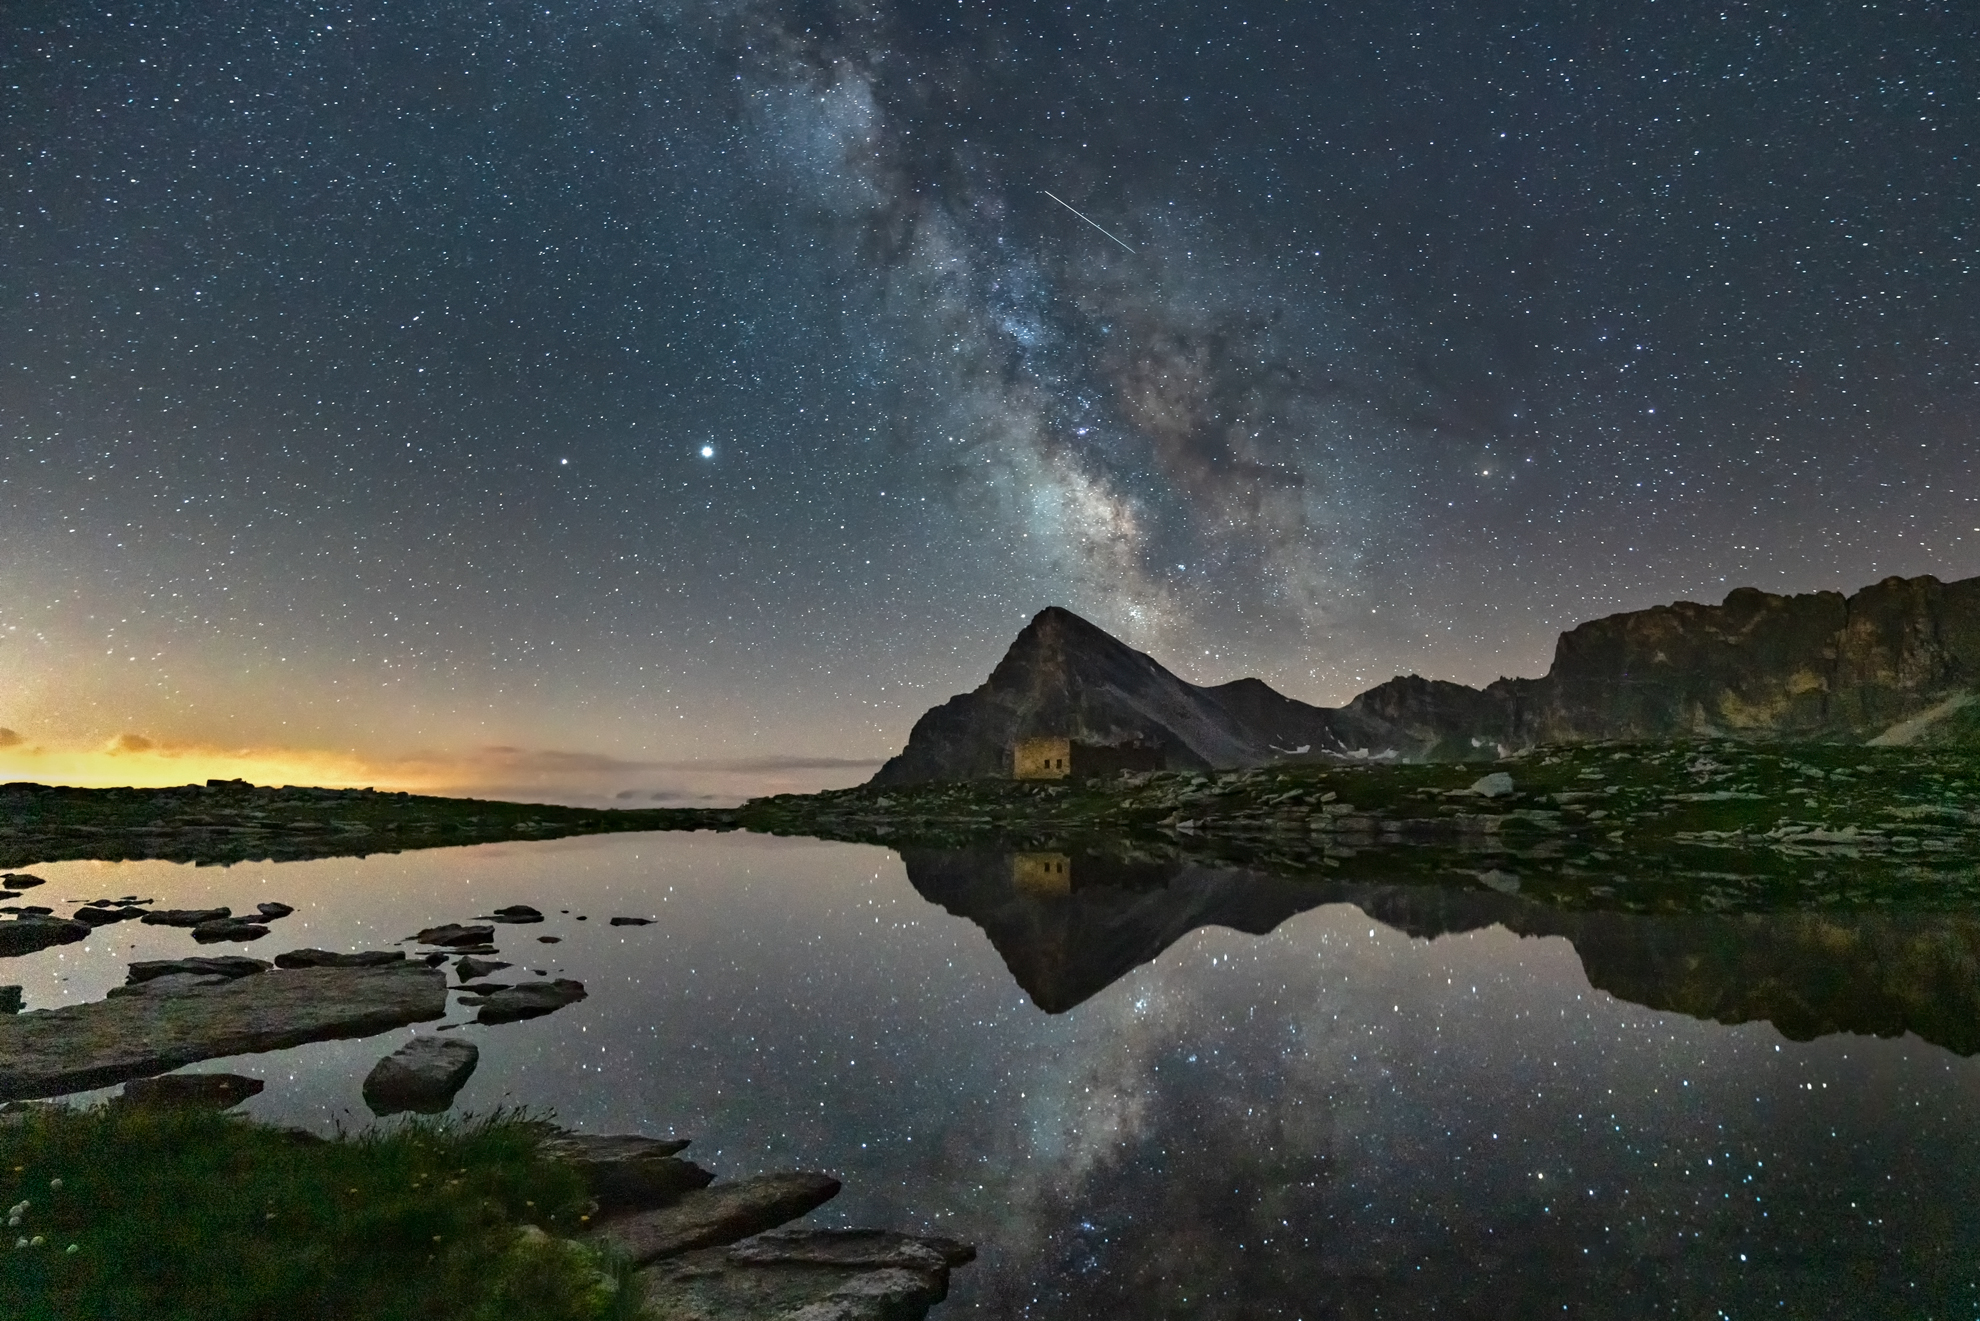 Lake Camoscere, Mount Chersogno and Milky Way...